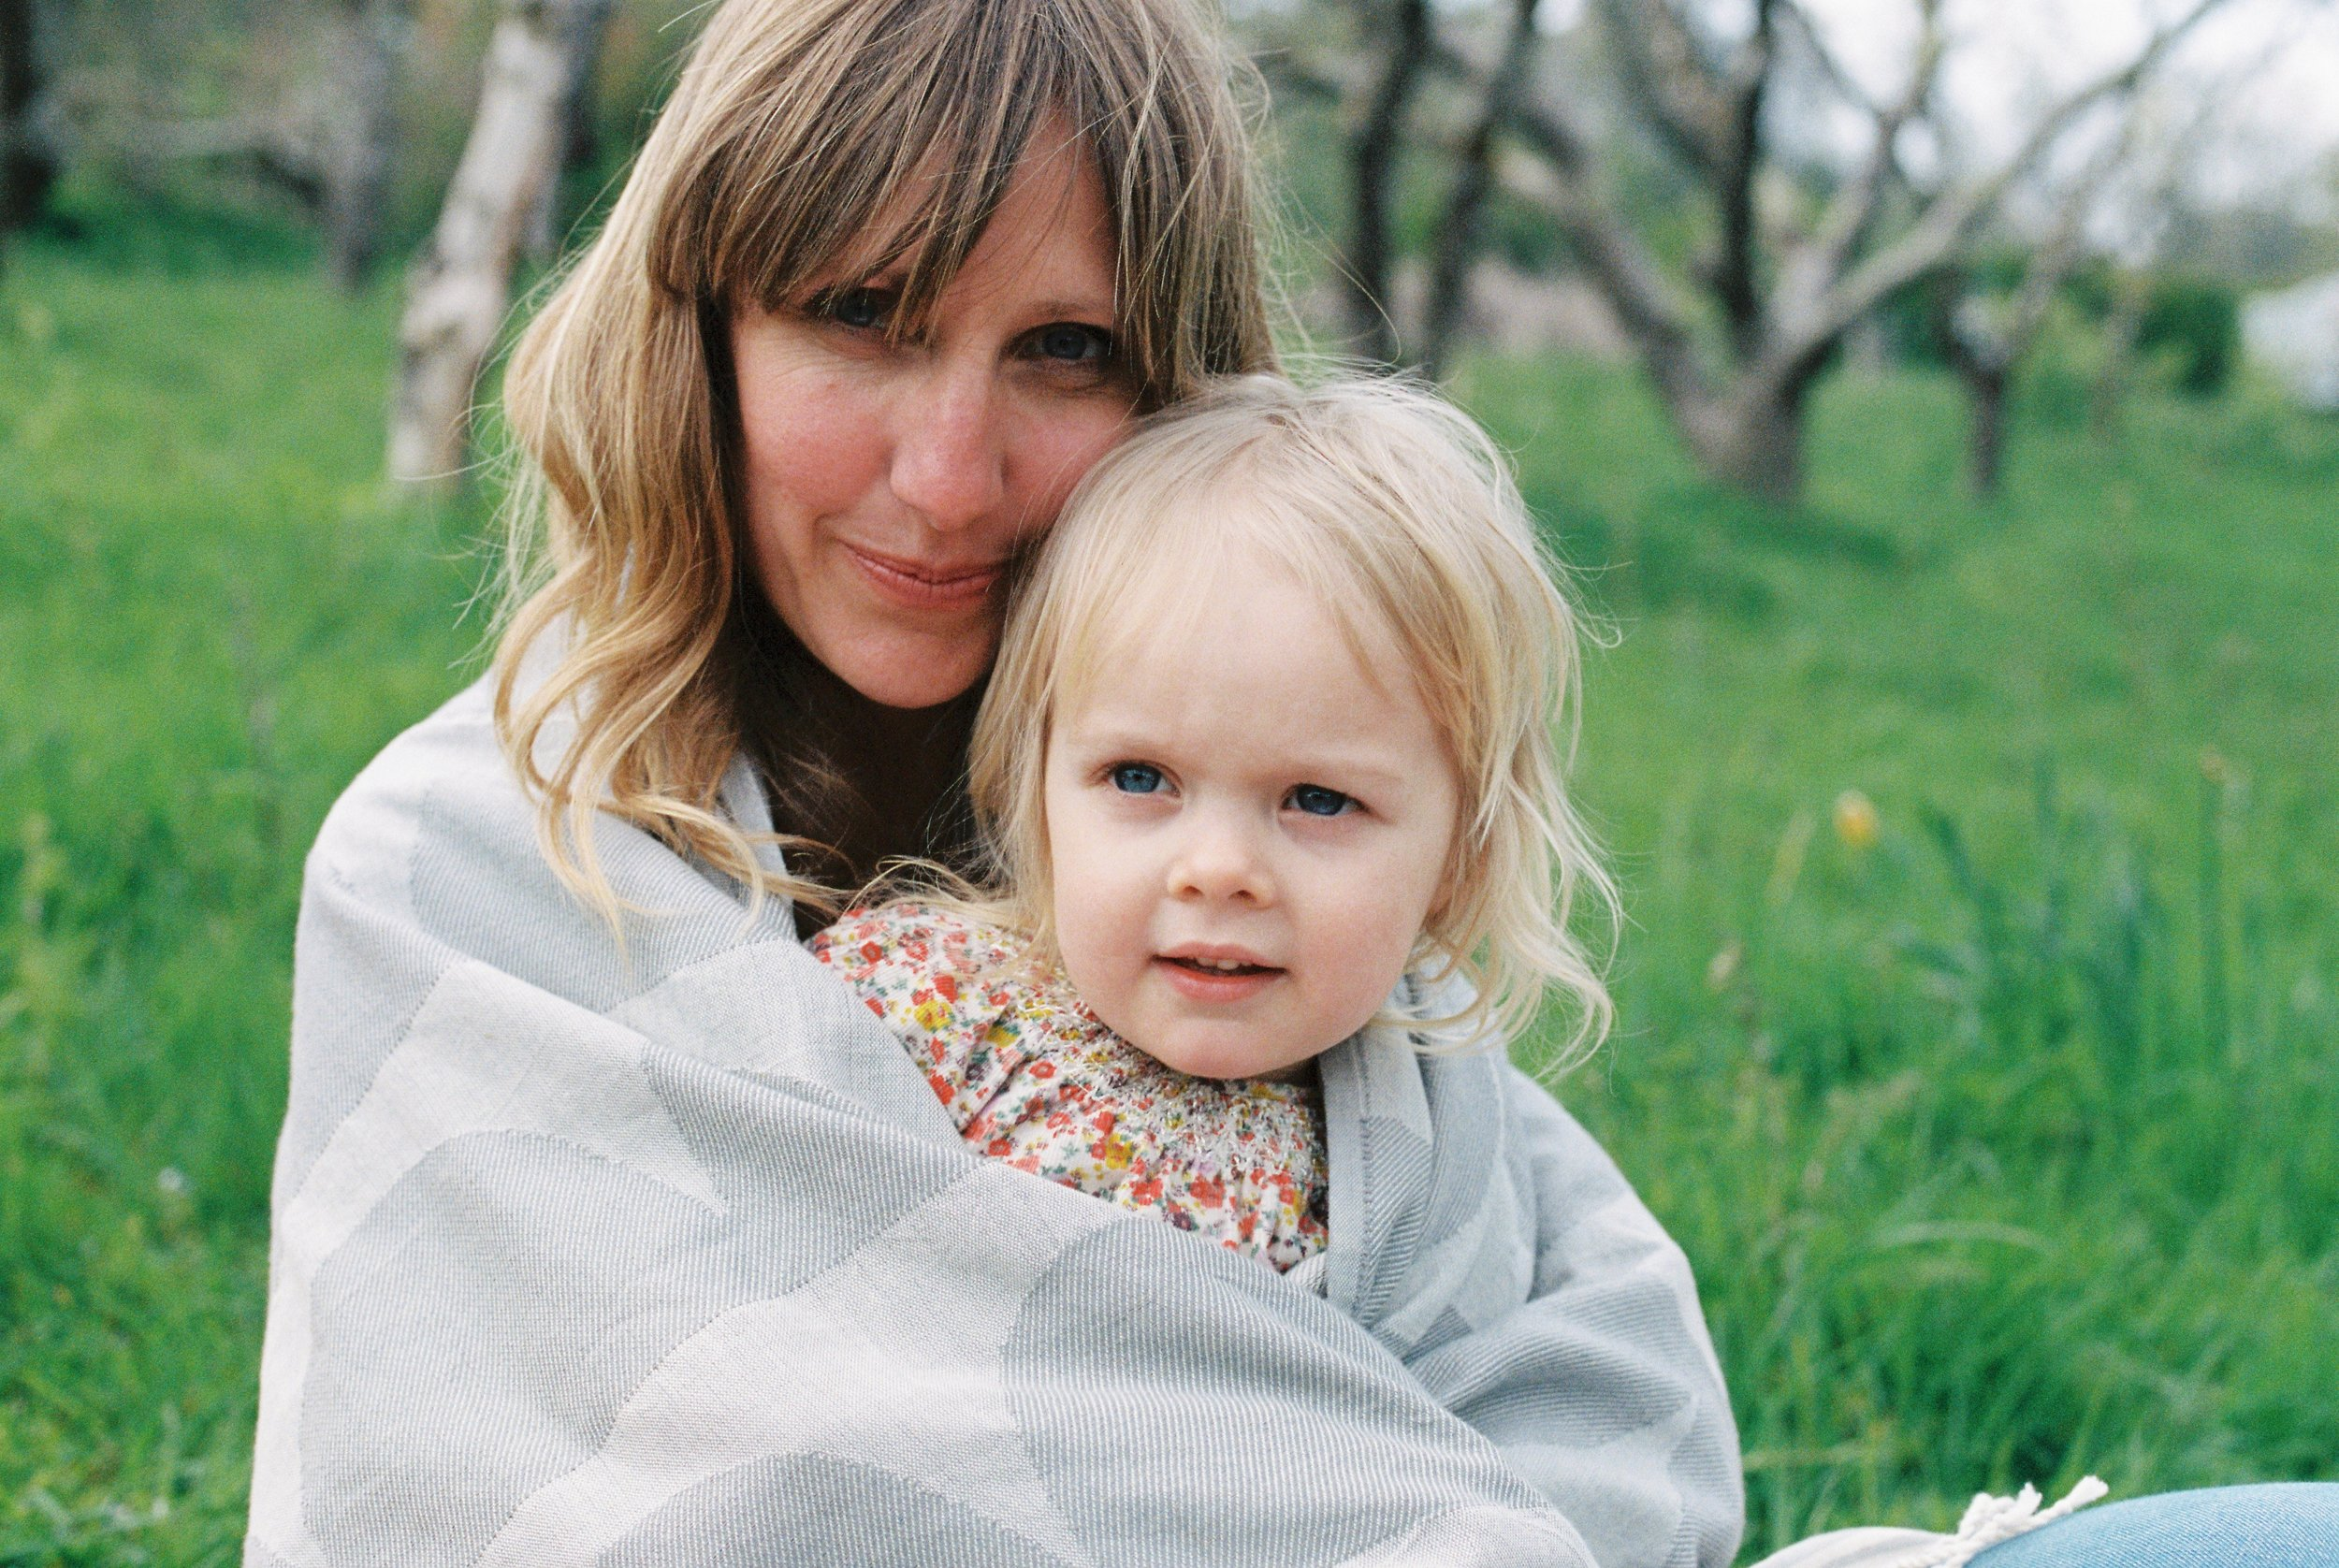 london_surrey_guildford_family_photographer_natural_light_emilywphotography.29.jpg